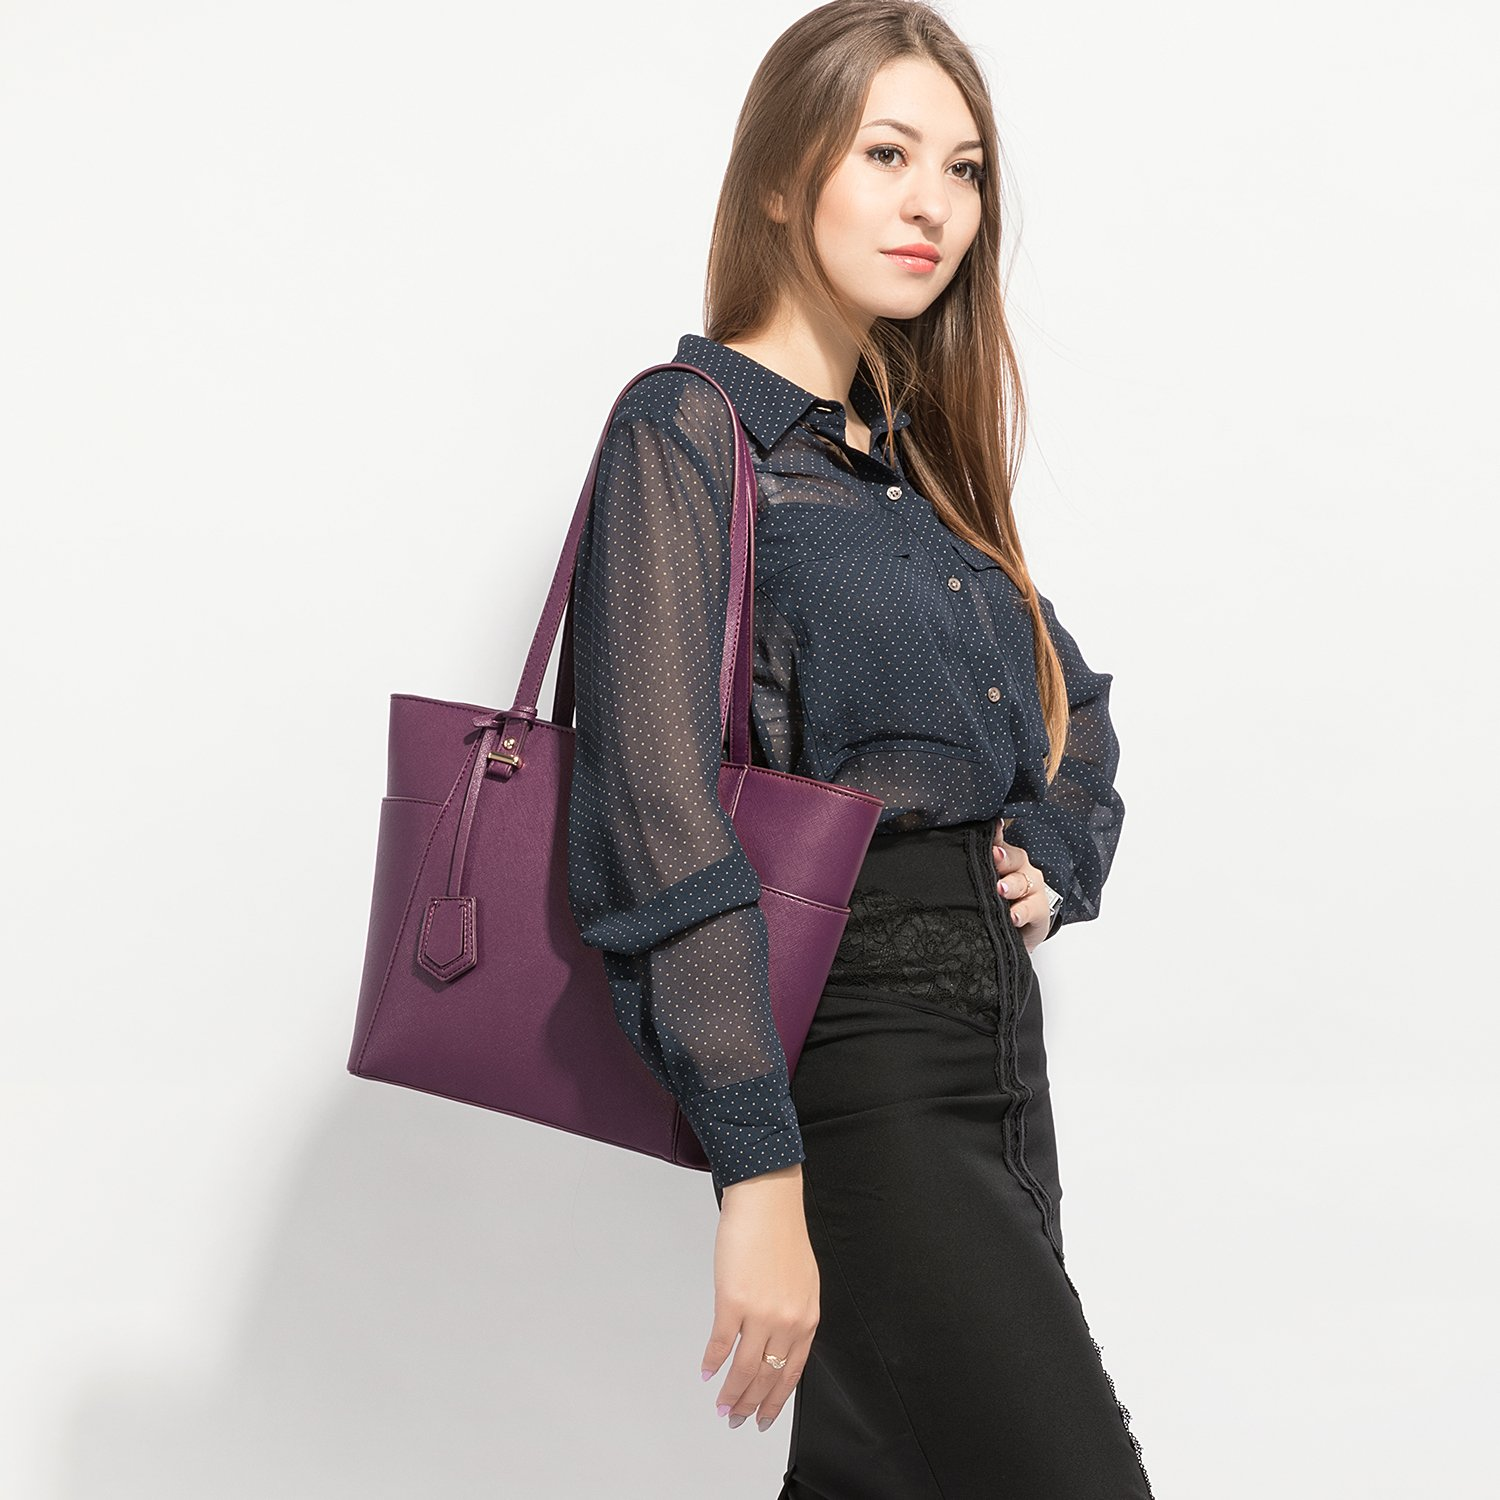 LOVEVOOK Women Purses and Handbags Chic Crossbody Bag Hobo 3pcs Large Capacity Purple by LOVEVOOK (Image #2)